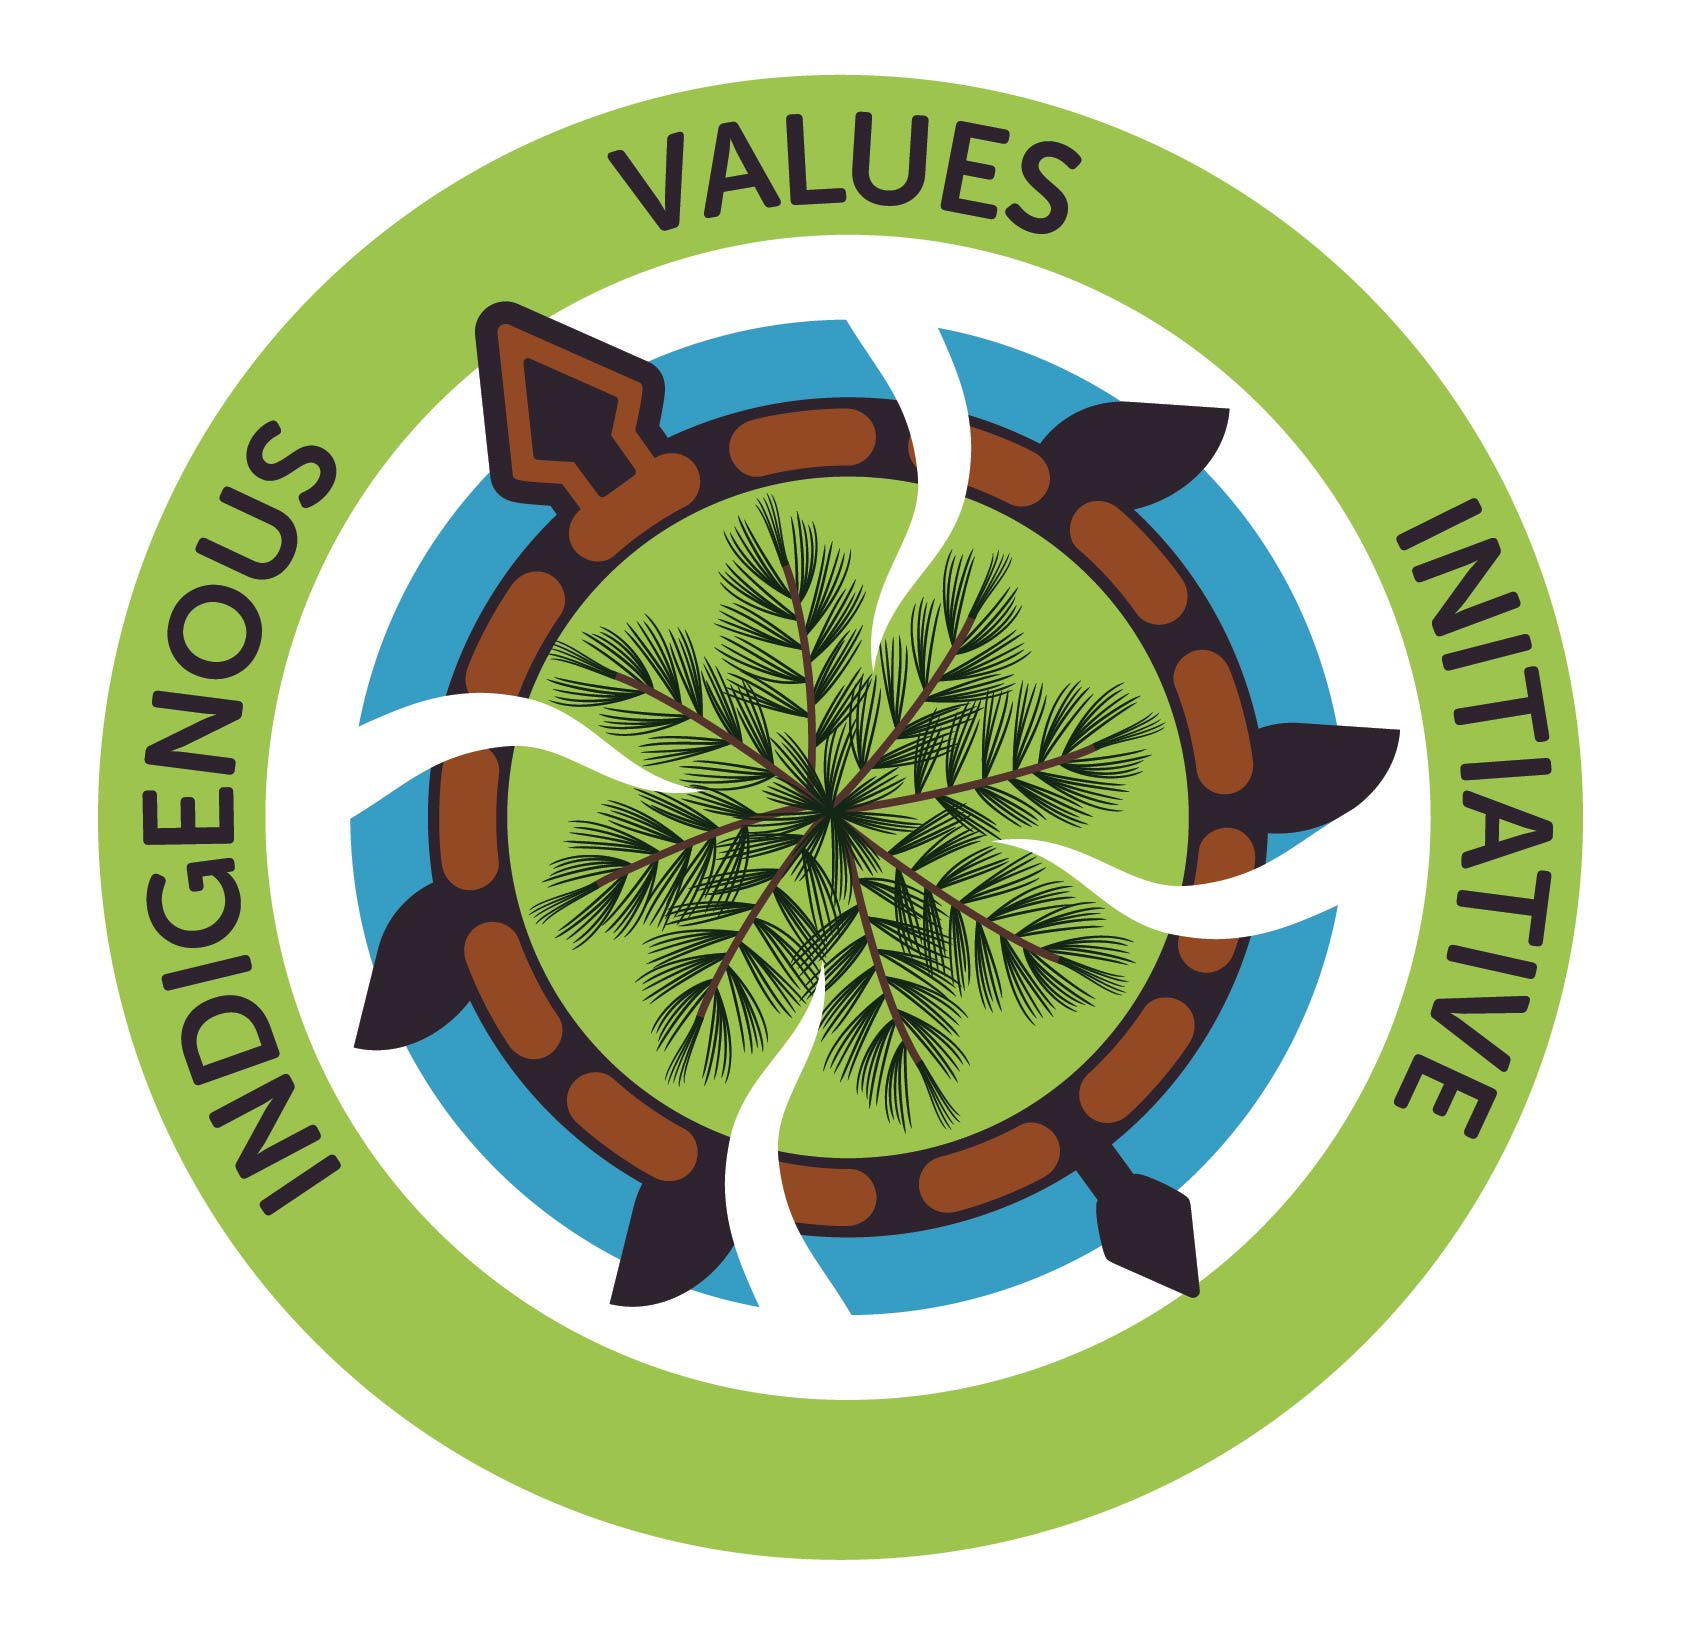 Indigenous Values Initiative